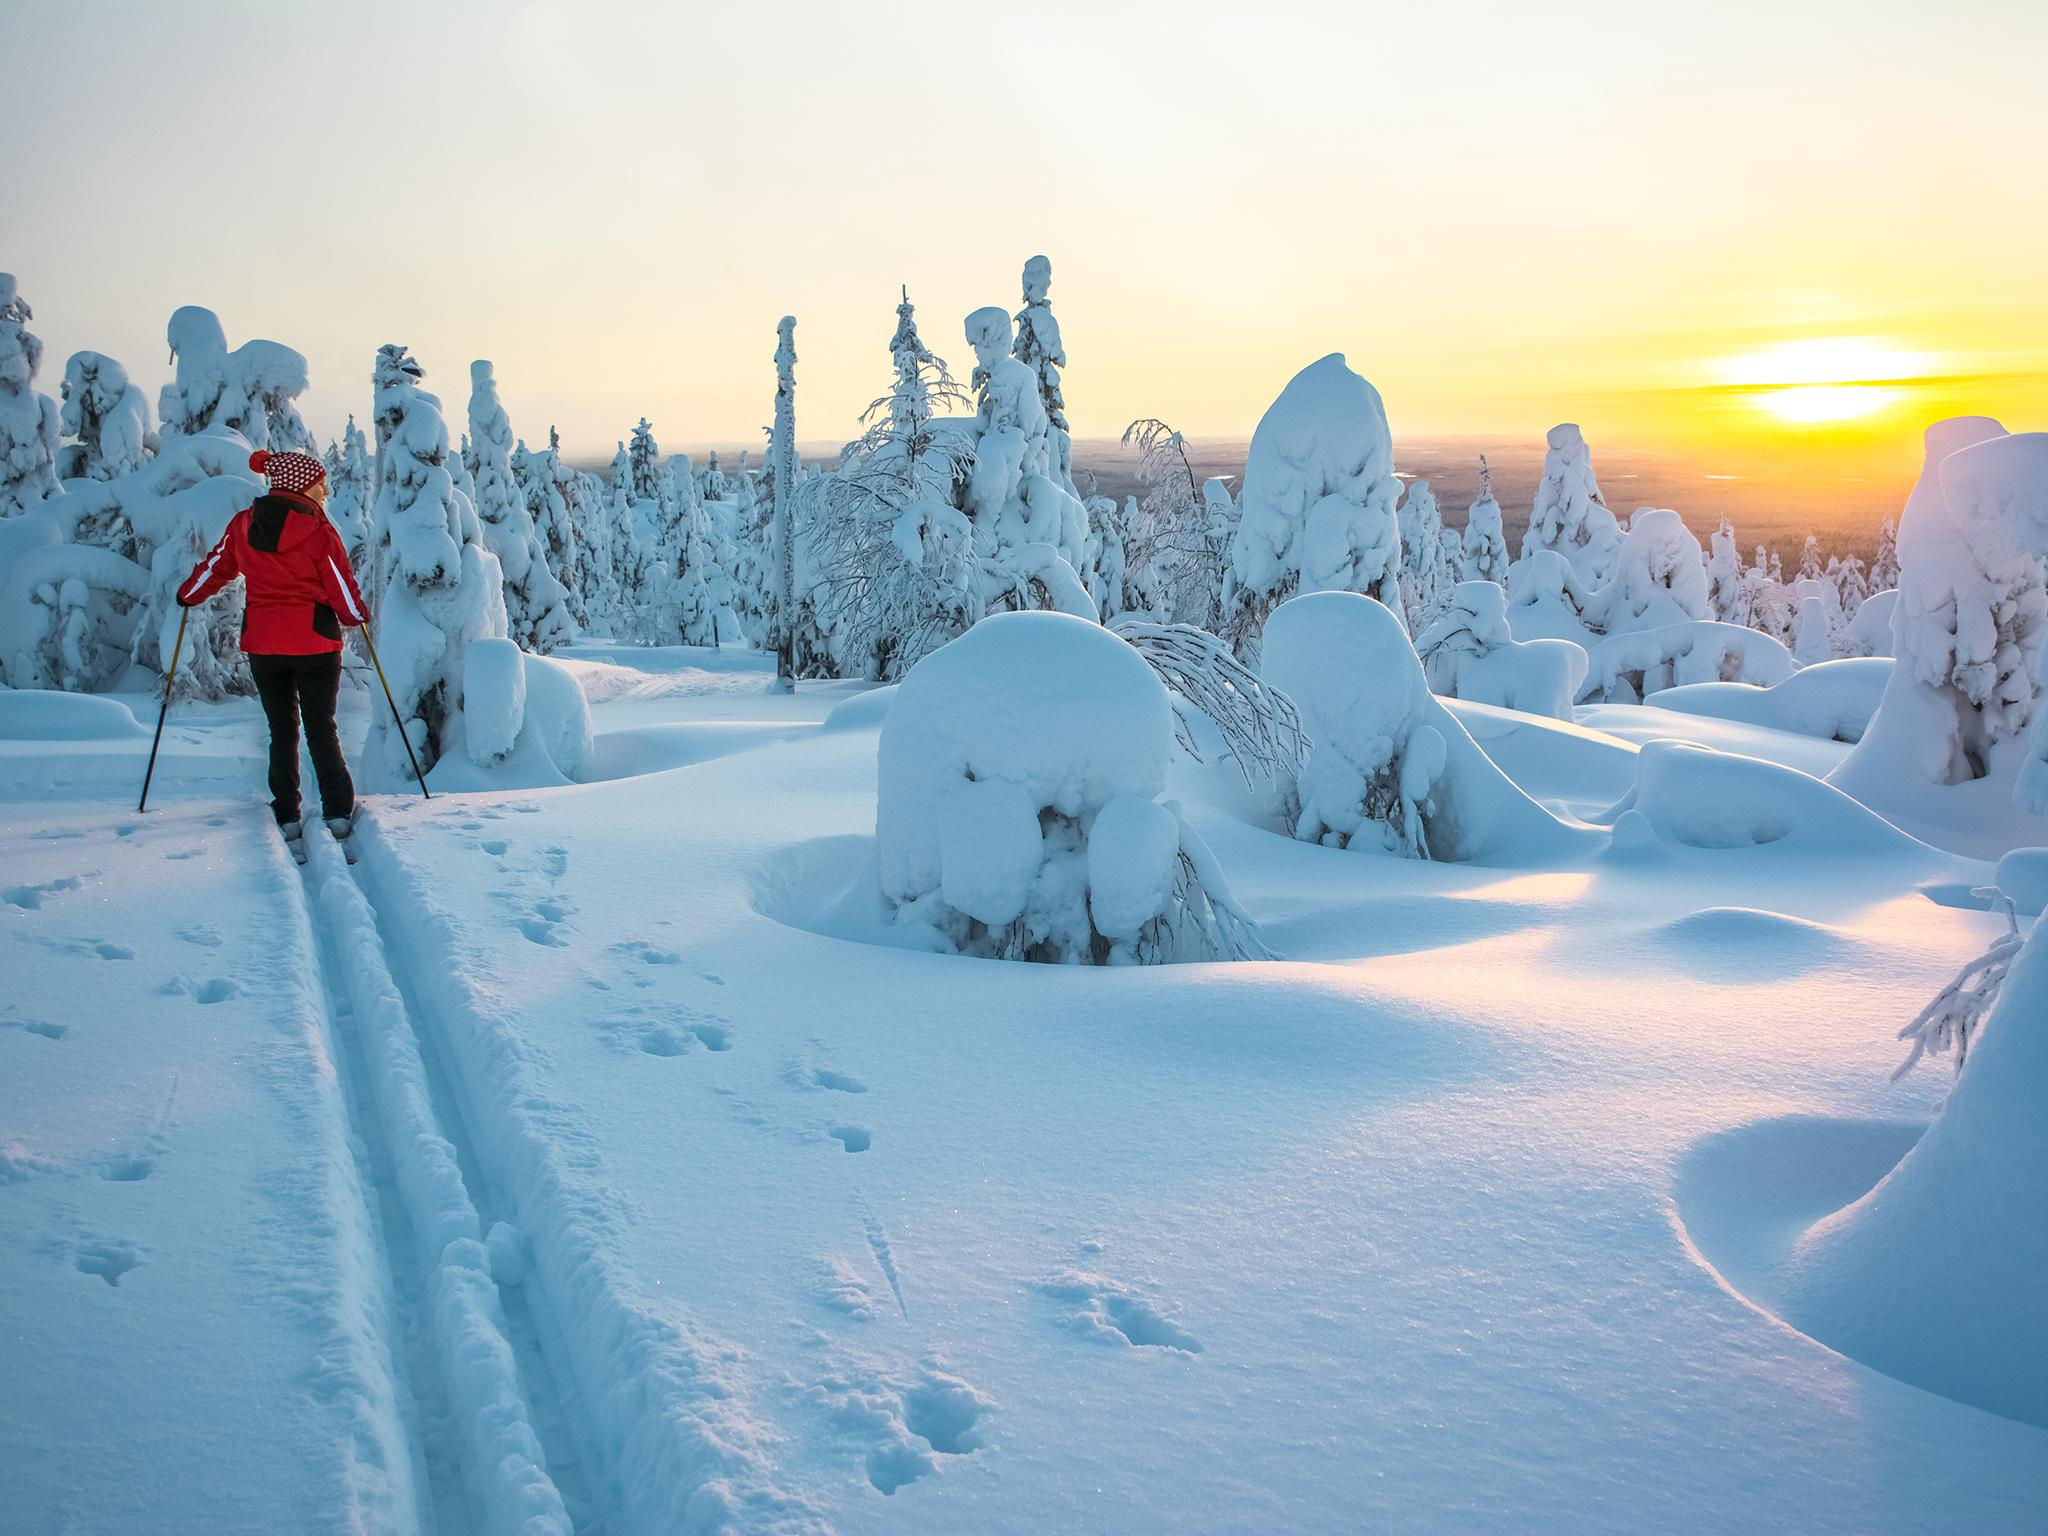 Finland vows to become carbon neutral by 2035 | The ...